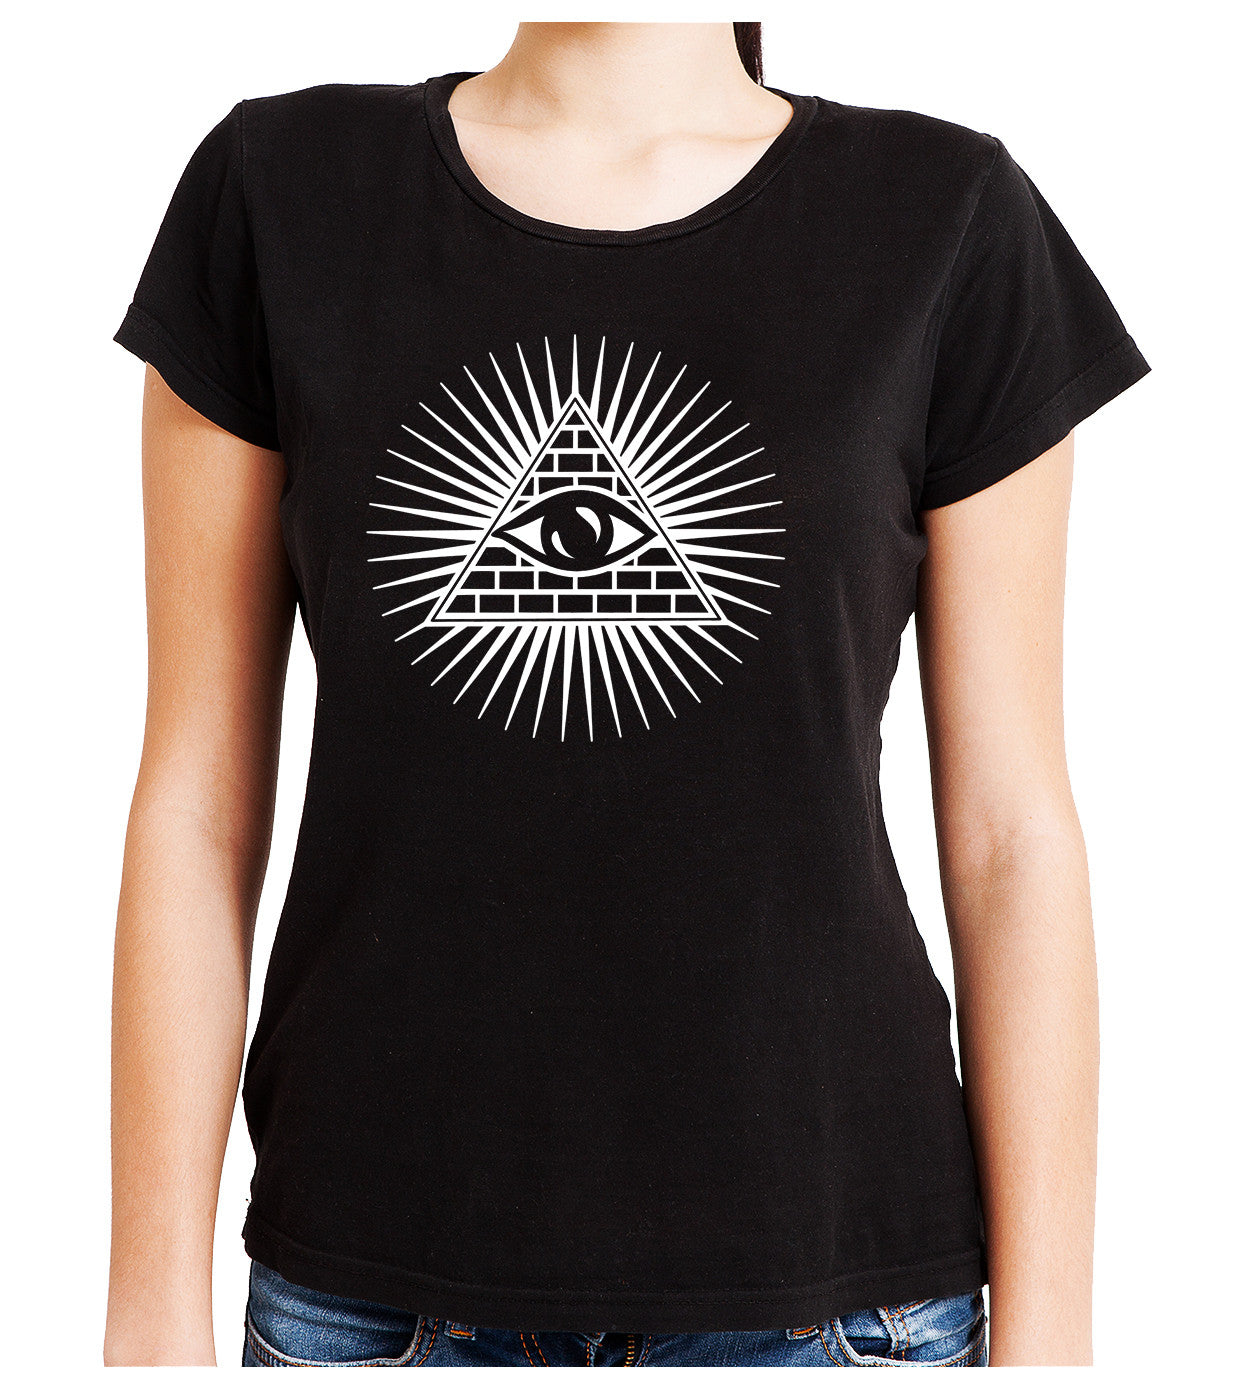 Illuminati Secret Society Women's Babydoll Shirt Alternative Clothing The Order of the Day